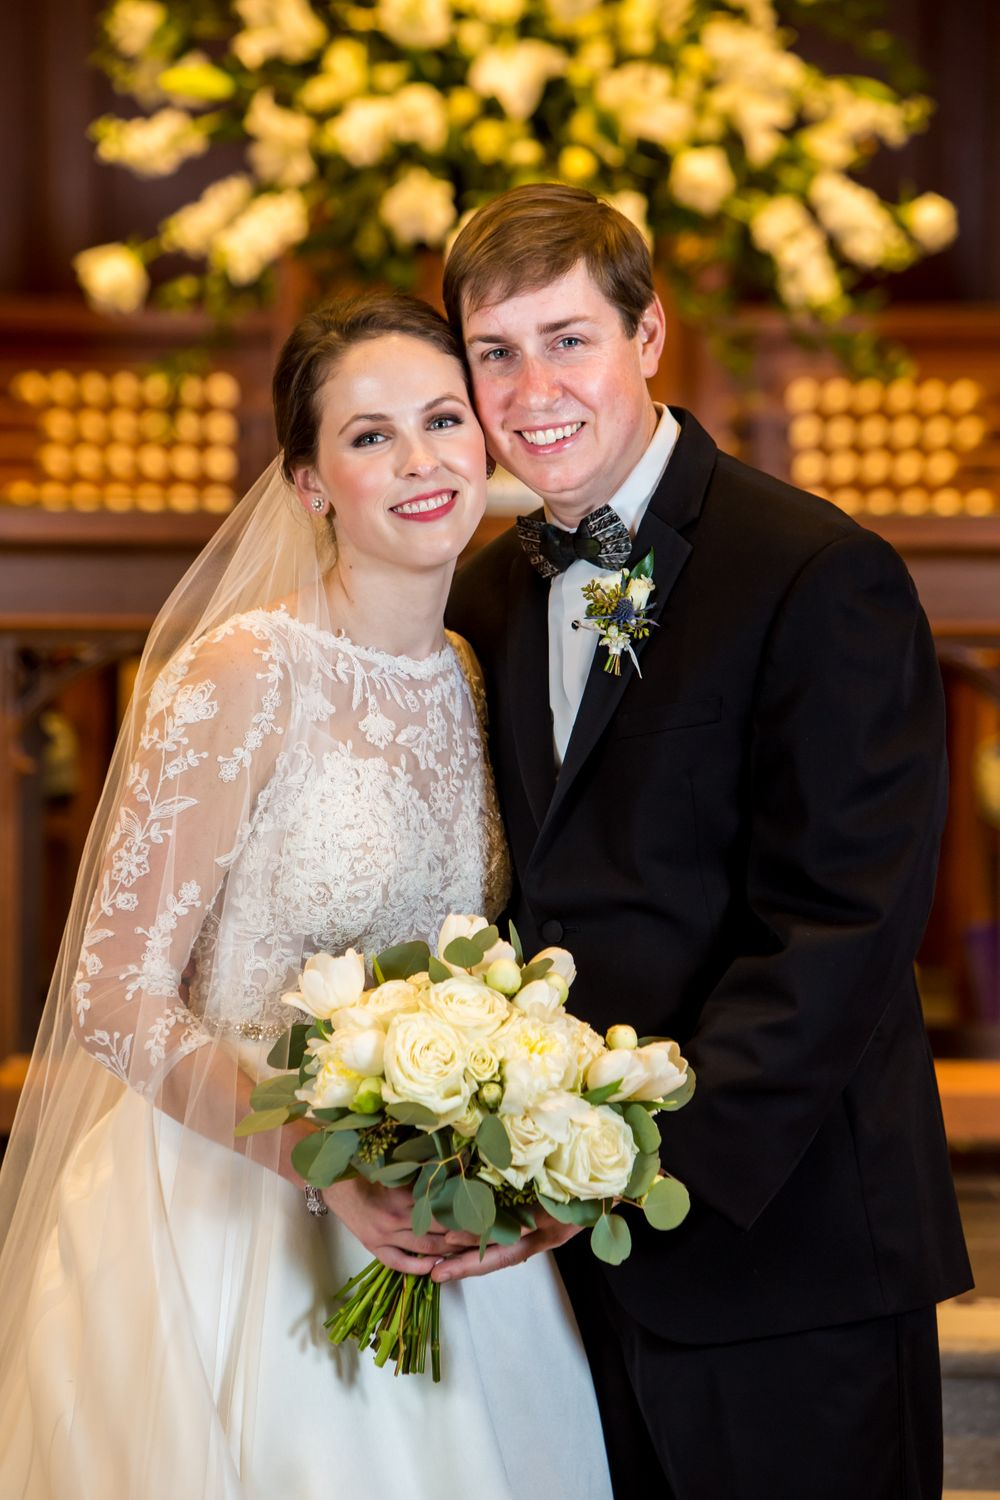 Bride Ferris and groom Chris pose after their a wedding ceremony at Shandon Presbyterian Church in Columbia, SC